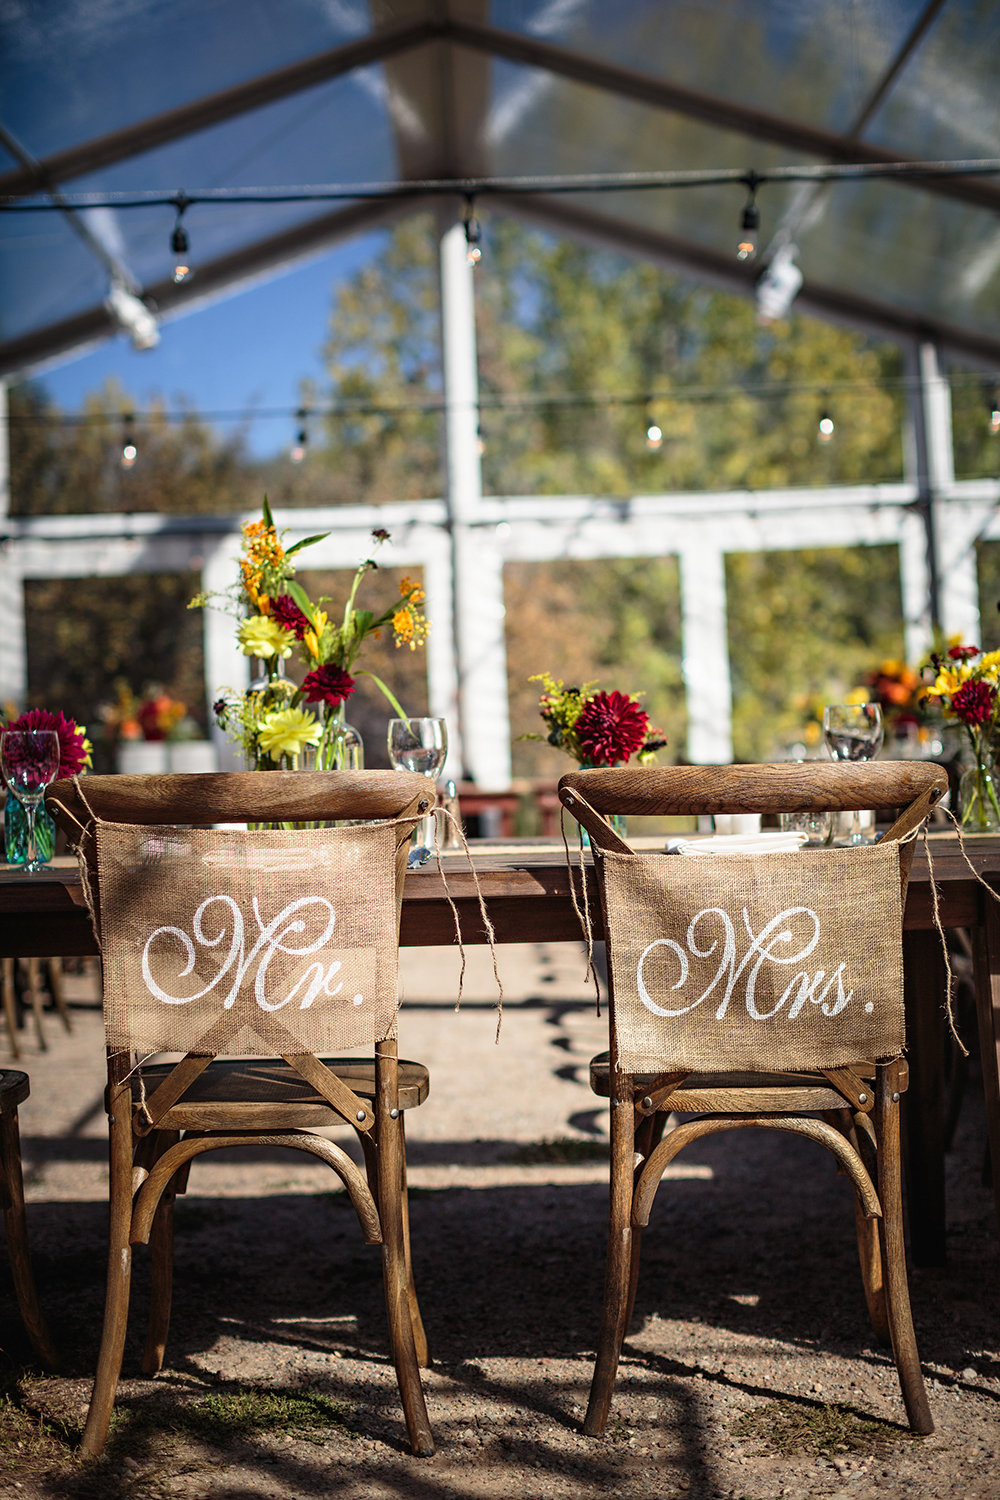 10 Ideas for a Chic CountryThemed Wedding  BridalGuide